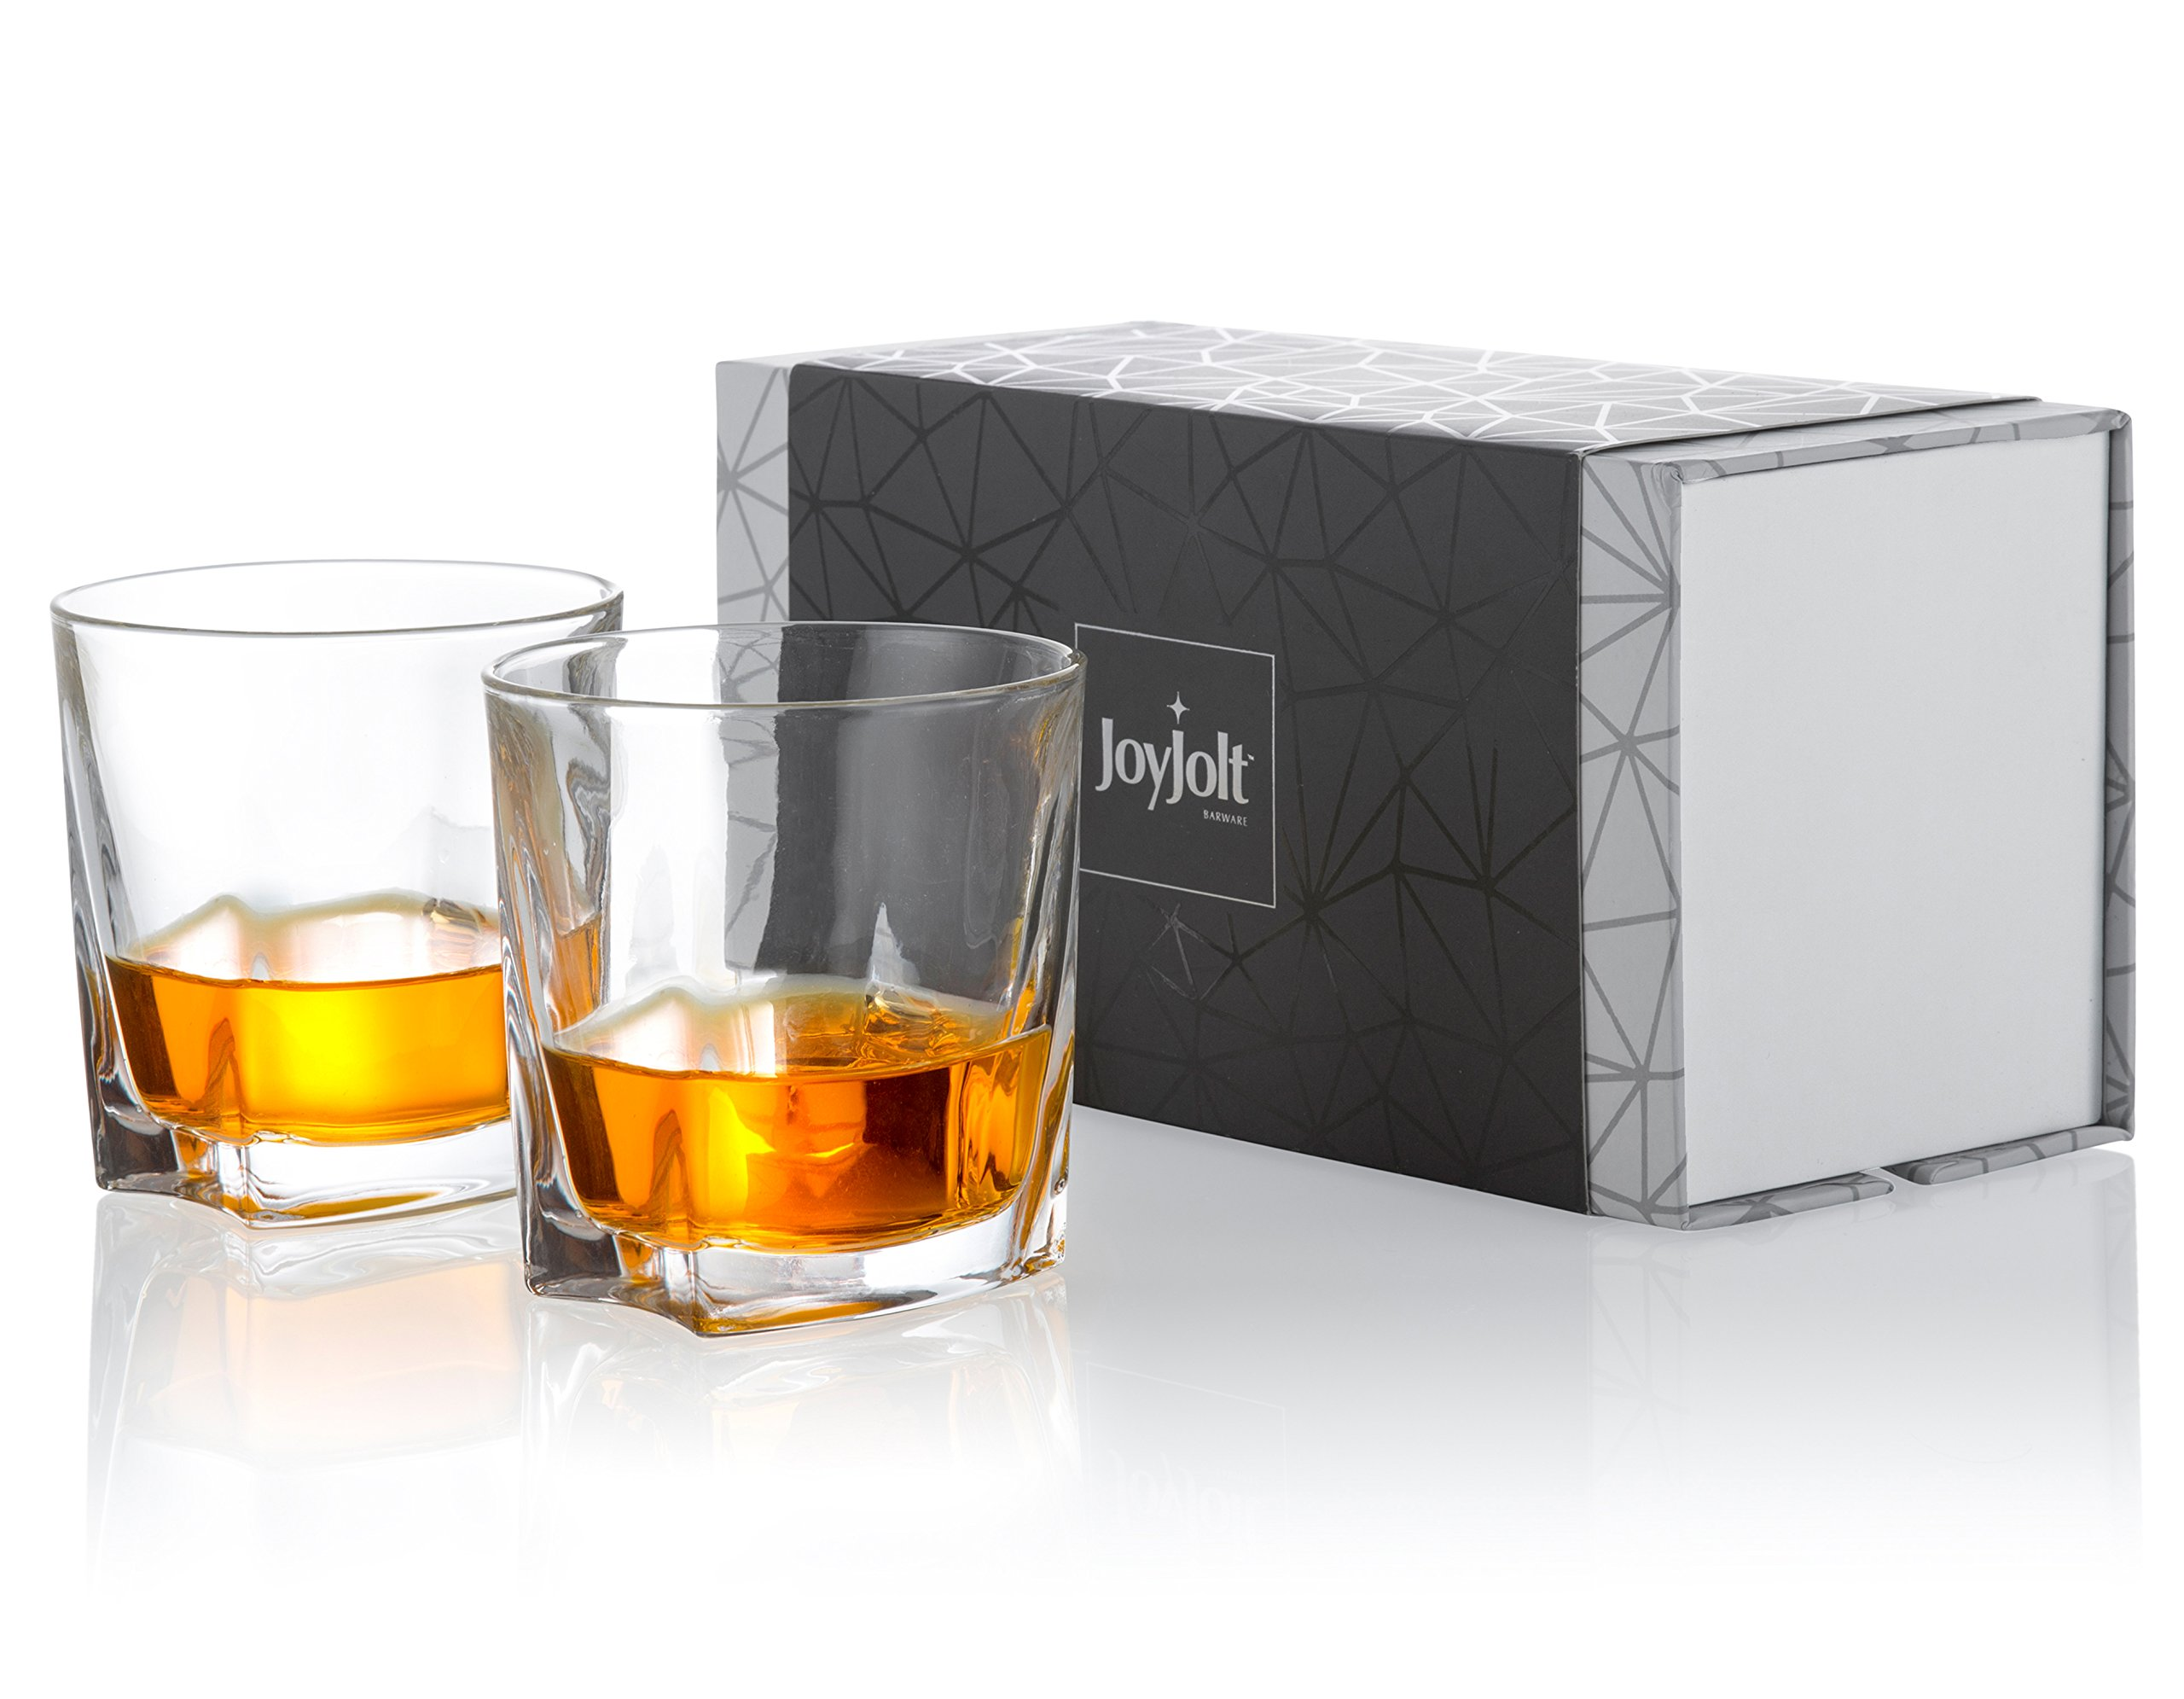 JoyJolt Luna Crystal Whiskey Glasses, Old Fashioned Whiskey Glass 10.5 Ounce, Ultra Clear Crystal Scotch Glass for Bourbon and Liquor Set Of 2 non-leaded crystal Glassware